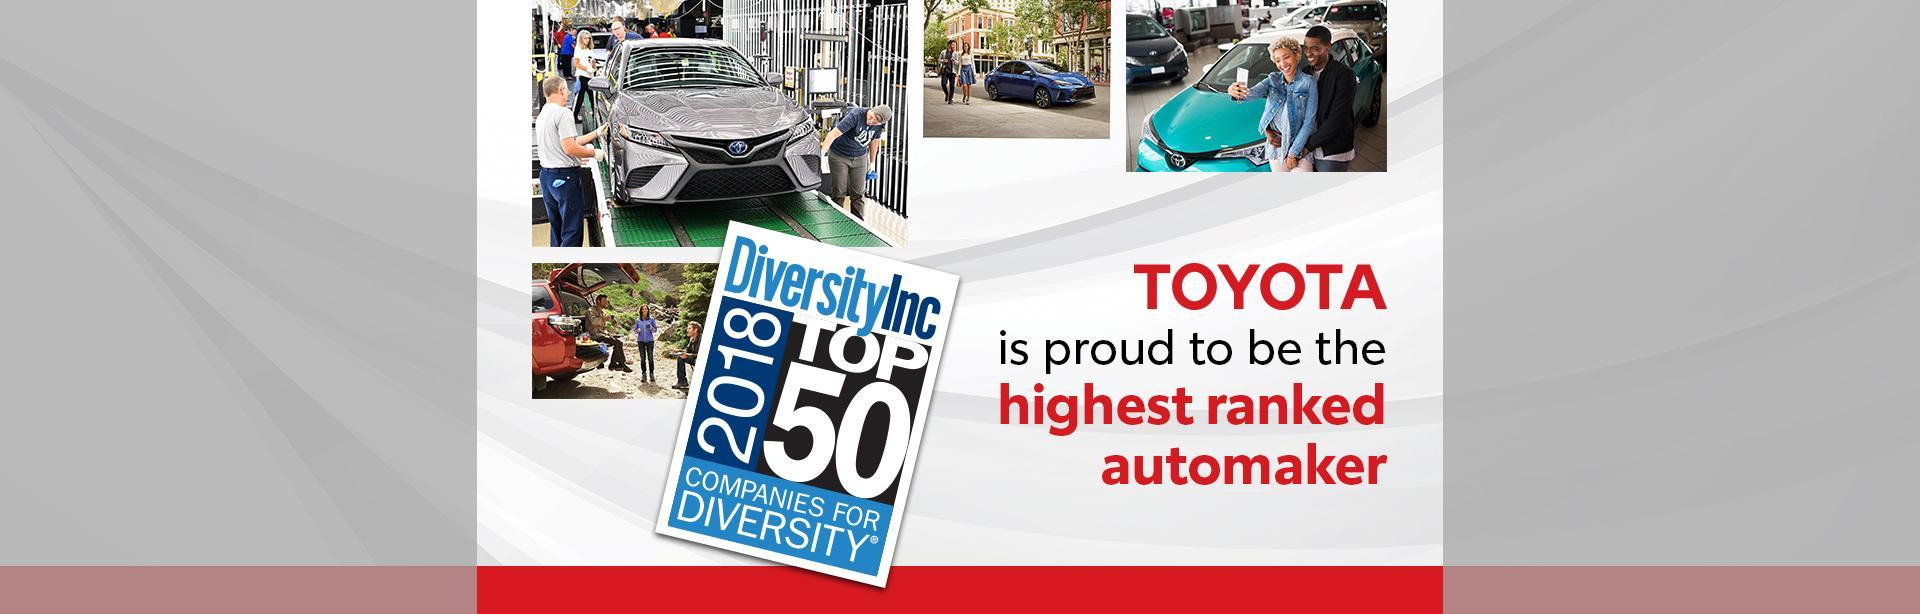 Toyota Highest Ranked Automaker